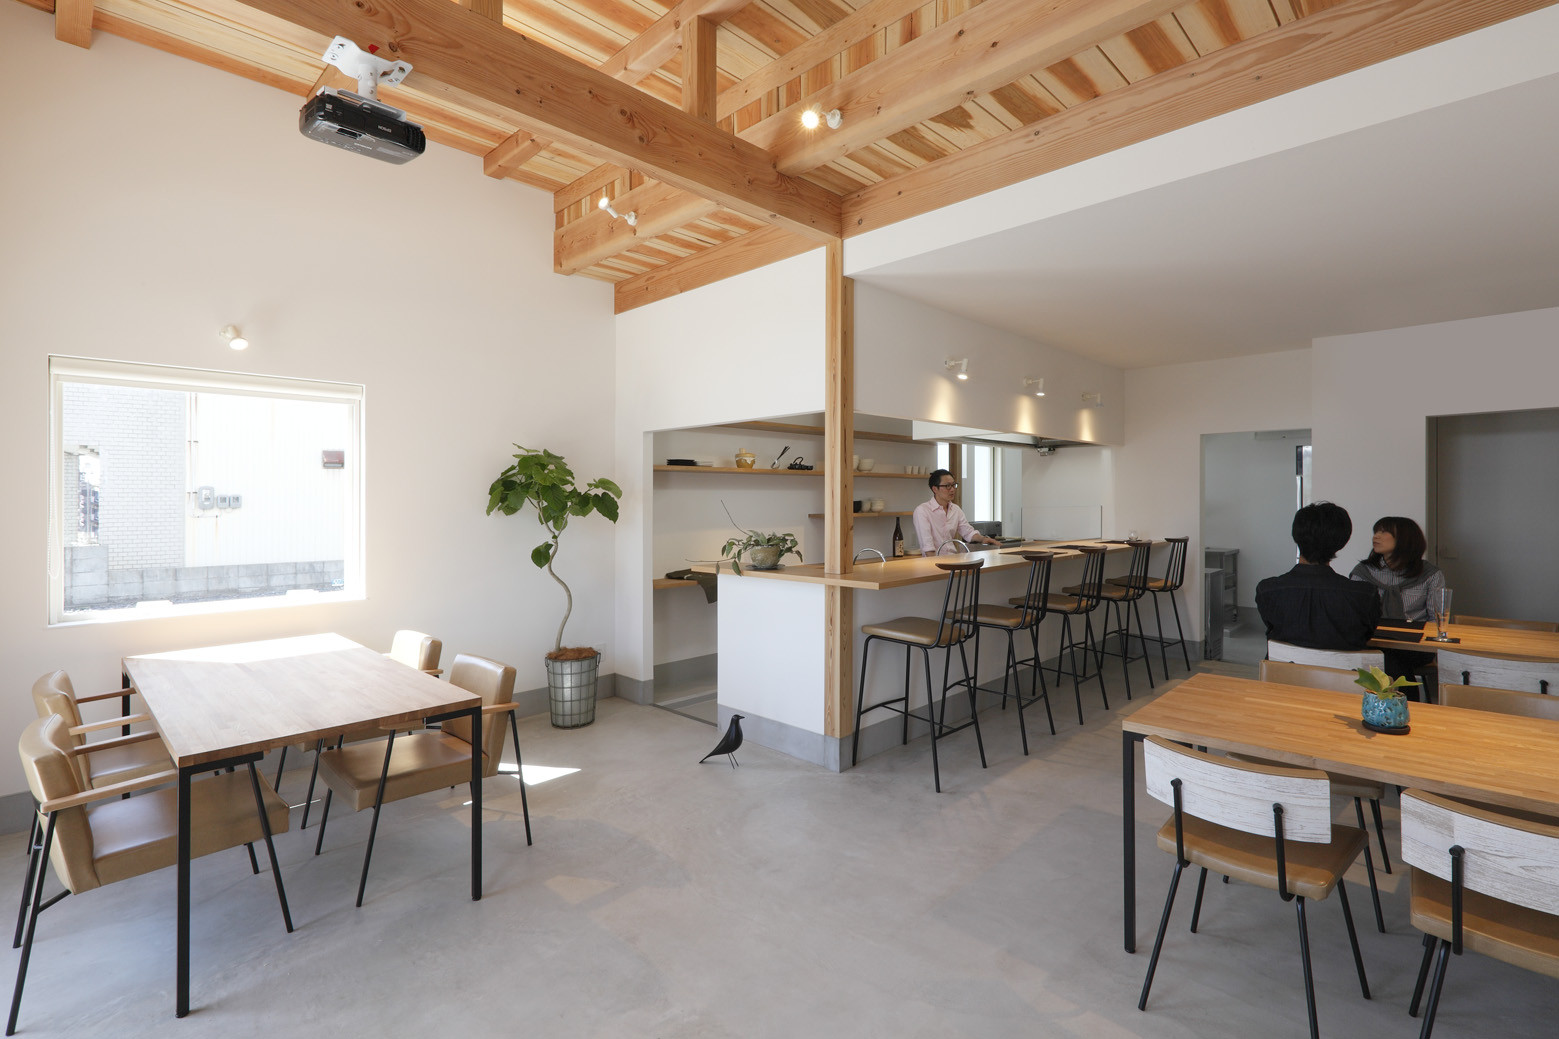 Higashihayashiguchi alts design office archdaily for Office design archdaily